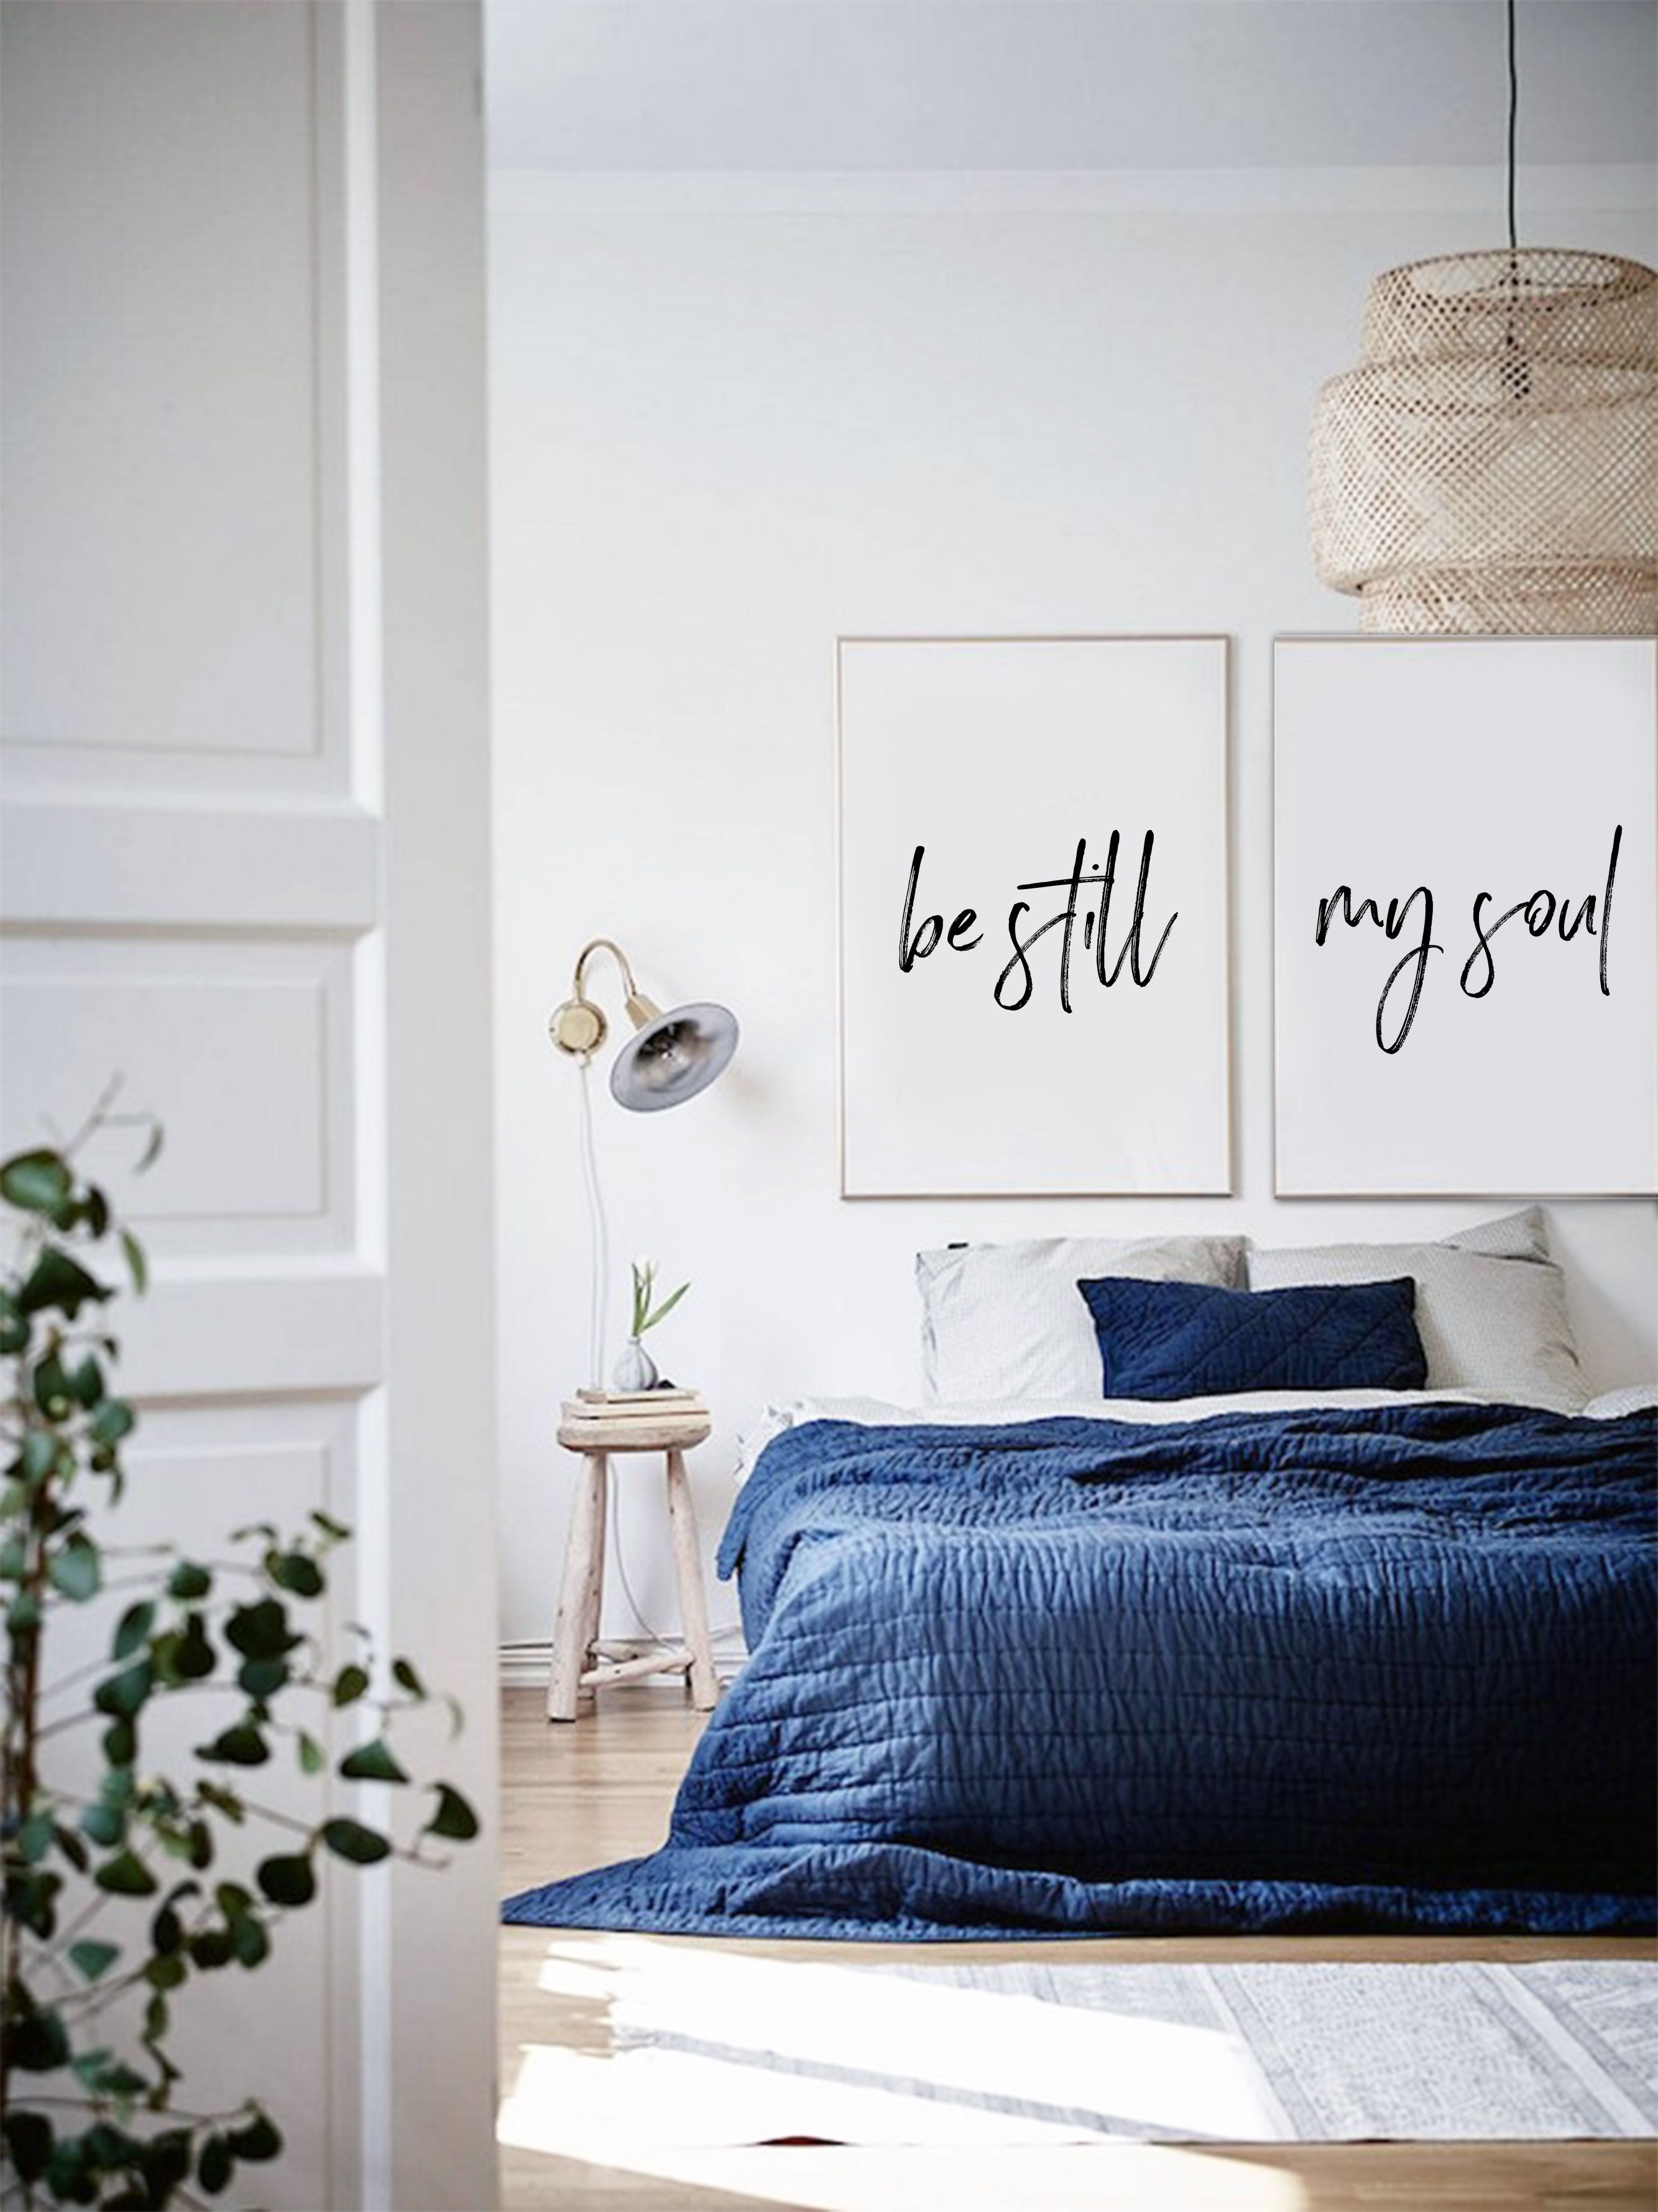 Be still my soul art print posters quote prints bedroom above bed